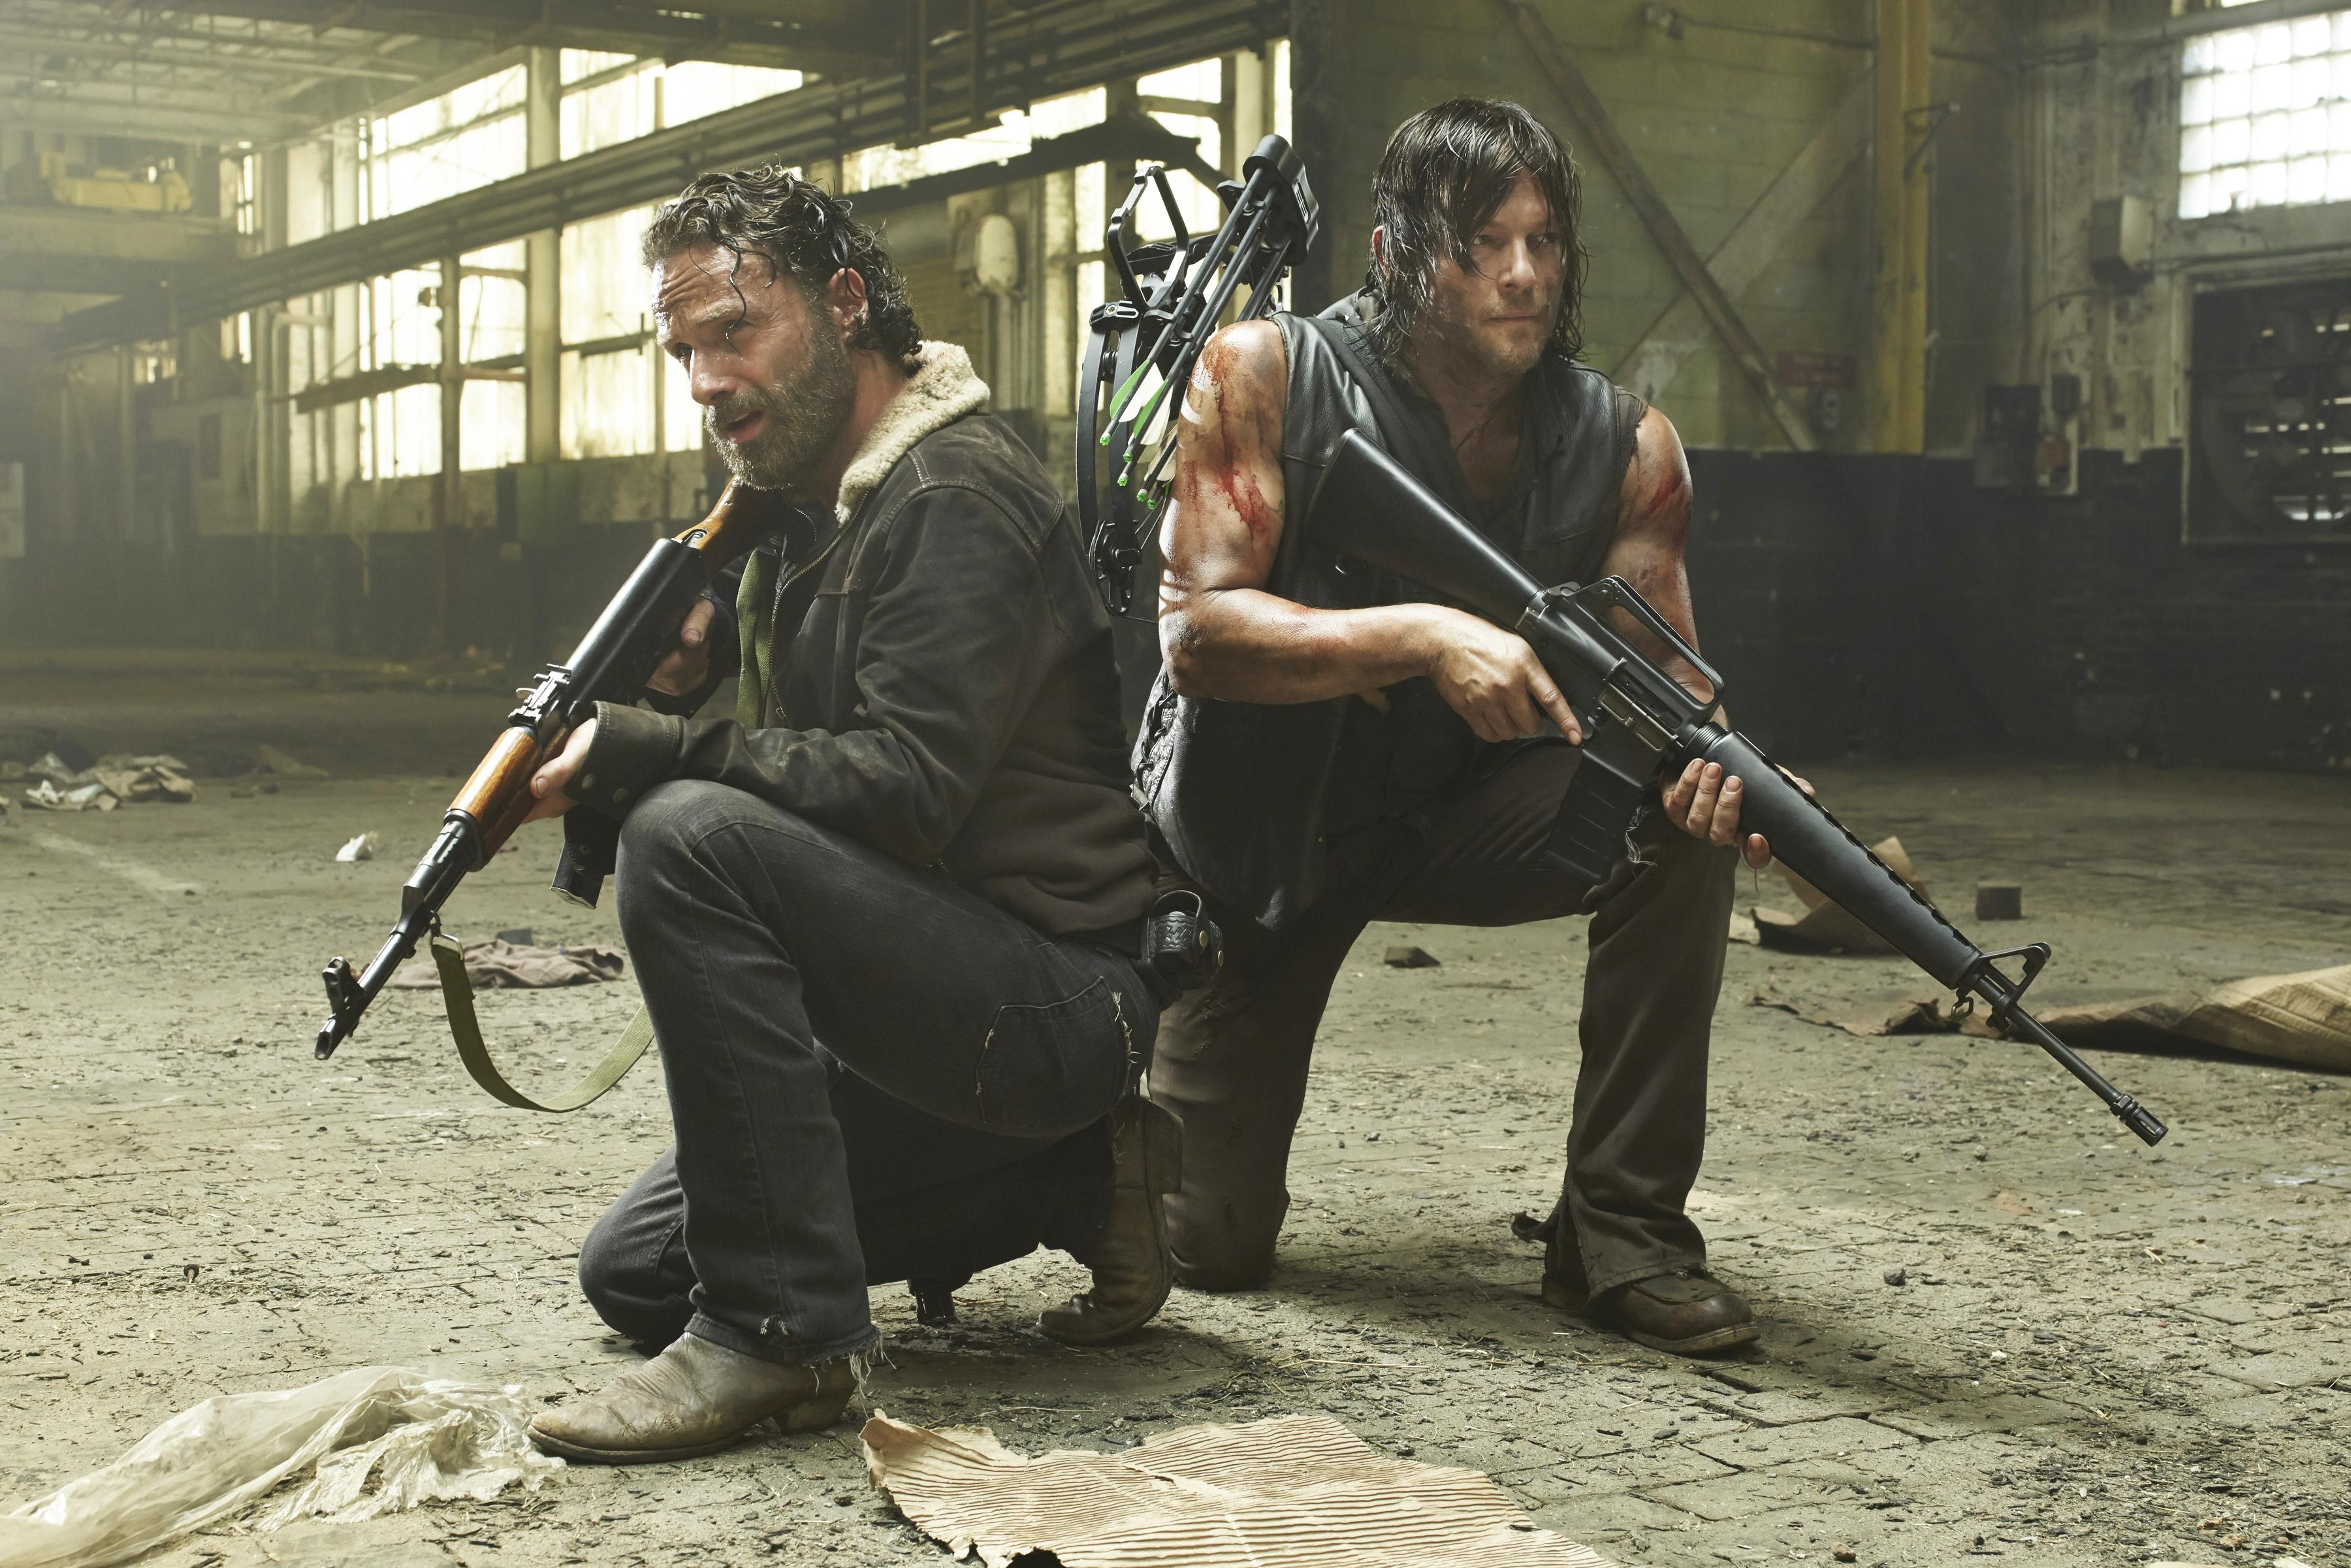 Download The Walking Dead Hd Wallpaper For Download The Walking